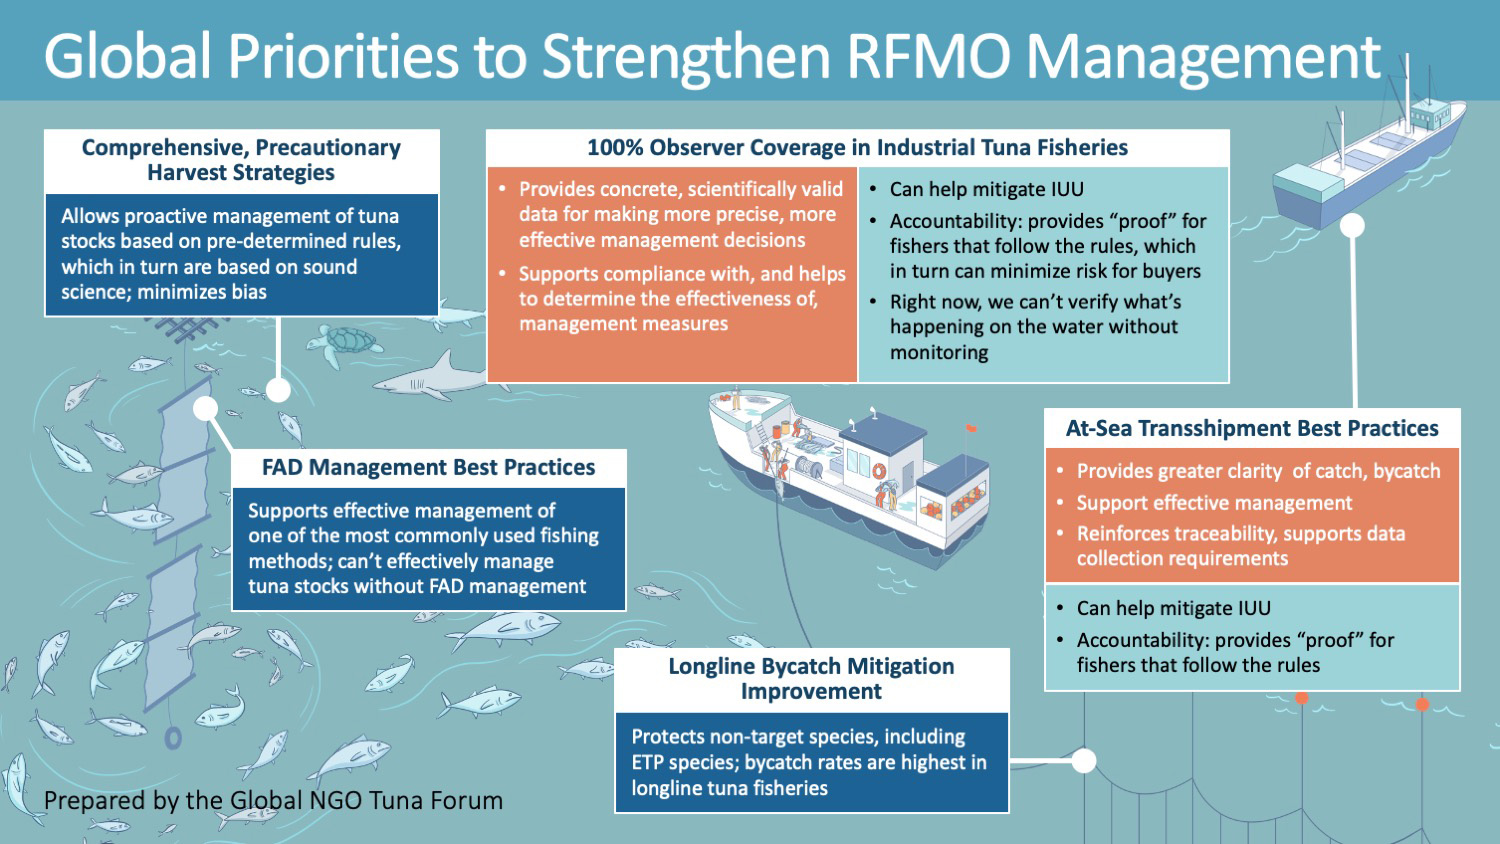 Global Priorities to Strengthen RFMO Management